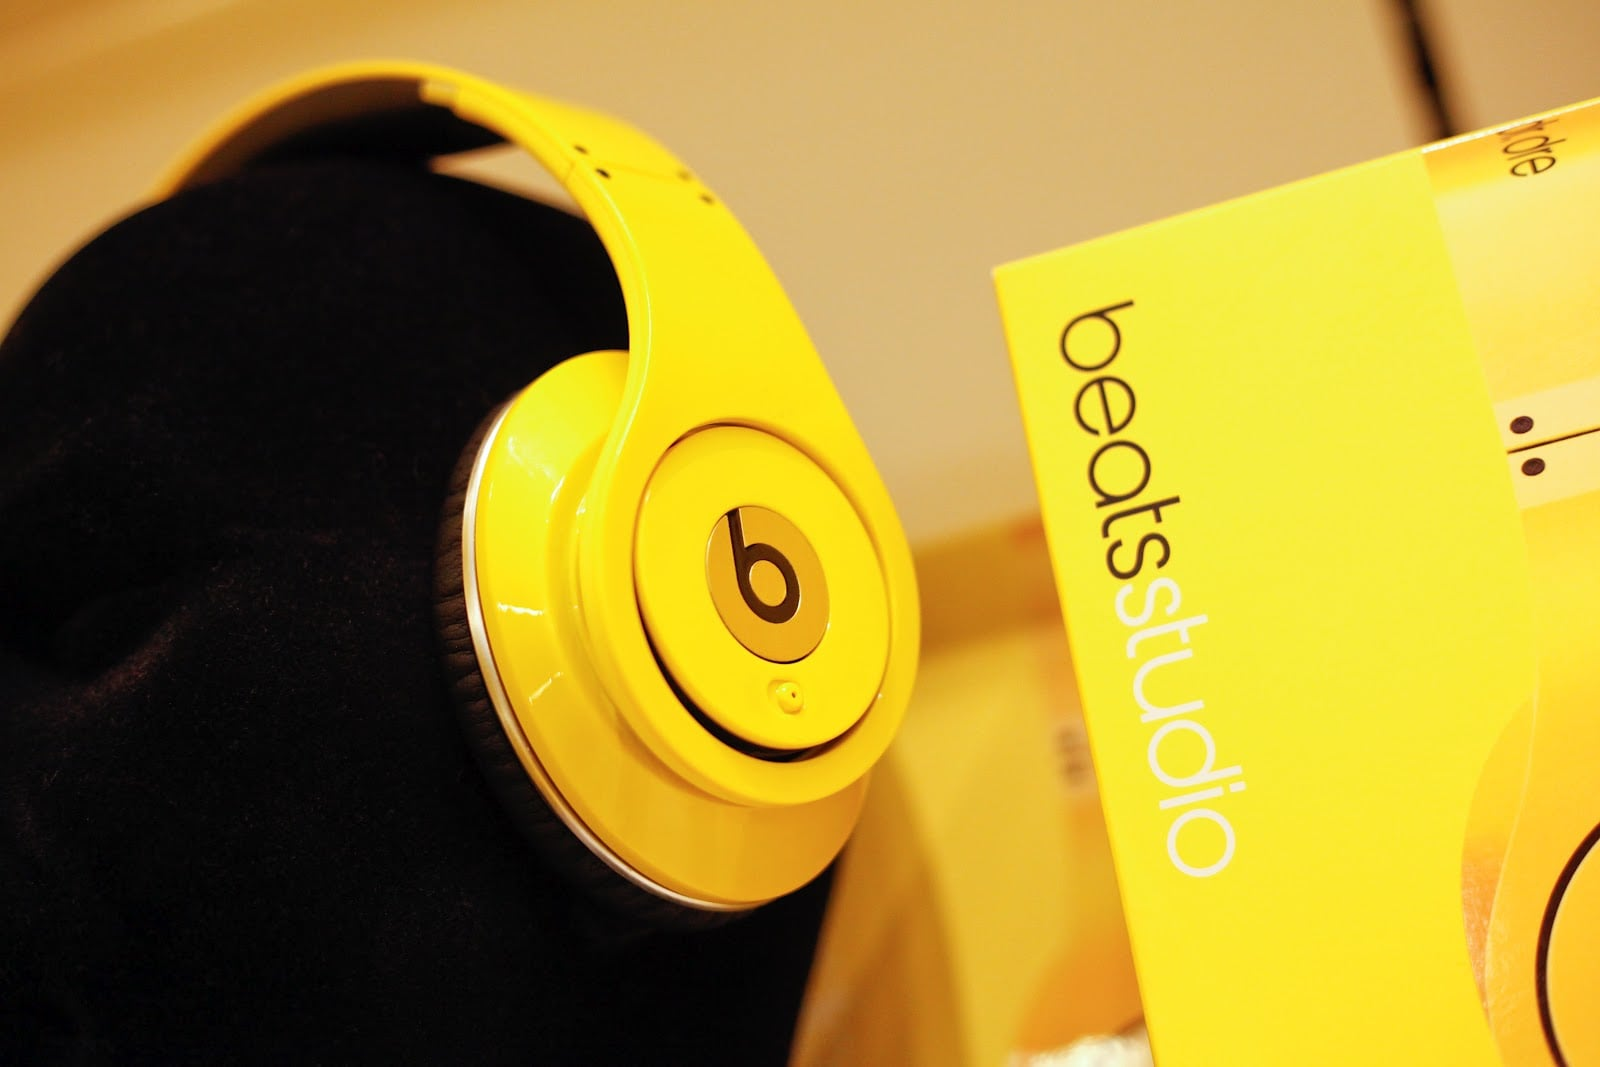 Download Car Wallpapers For Laptop Beats By Dr Dre Hd Wallpapers Free Download Headphones